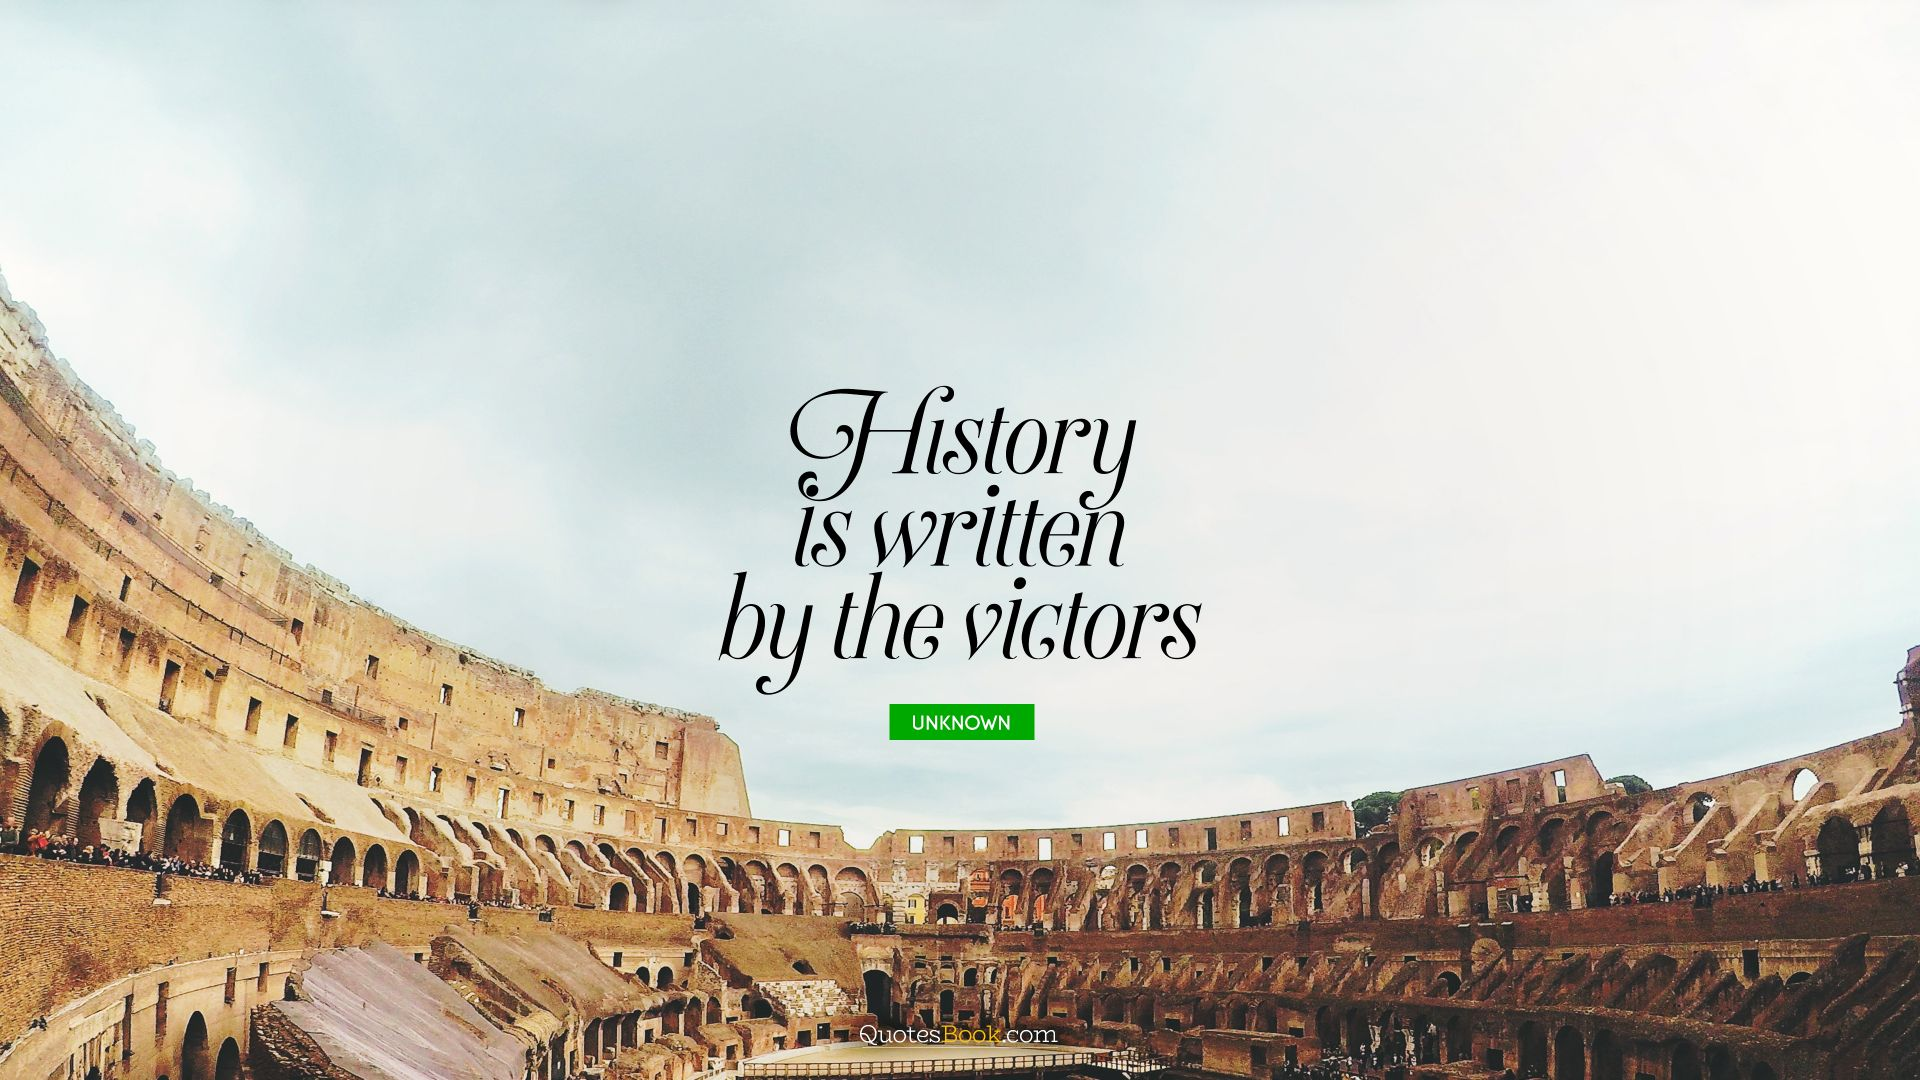 History is written by the victors